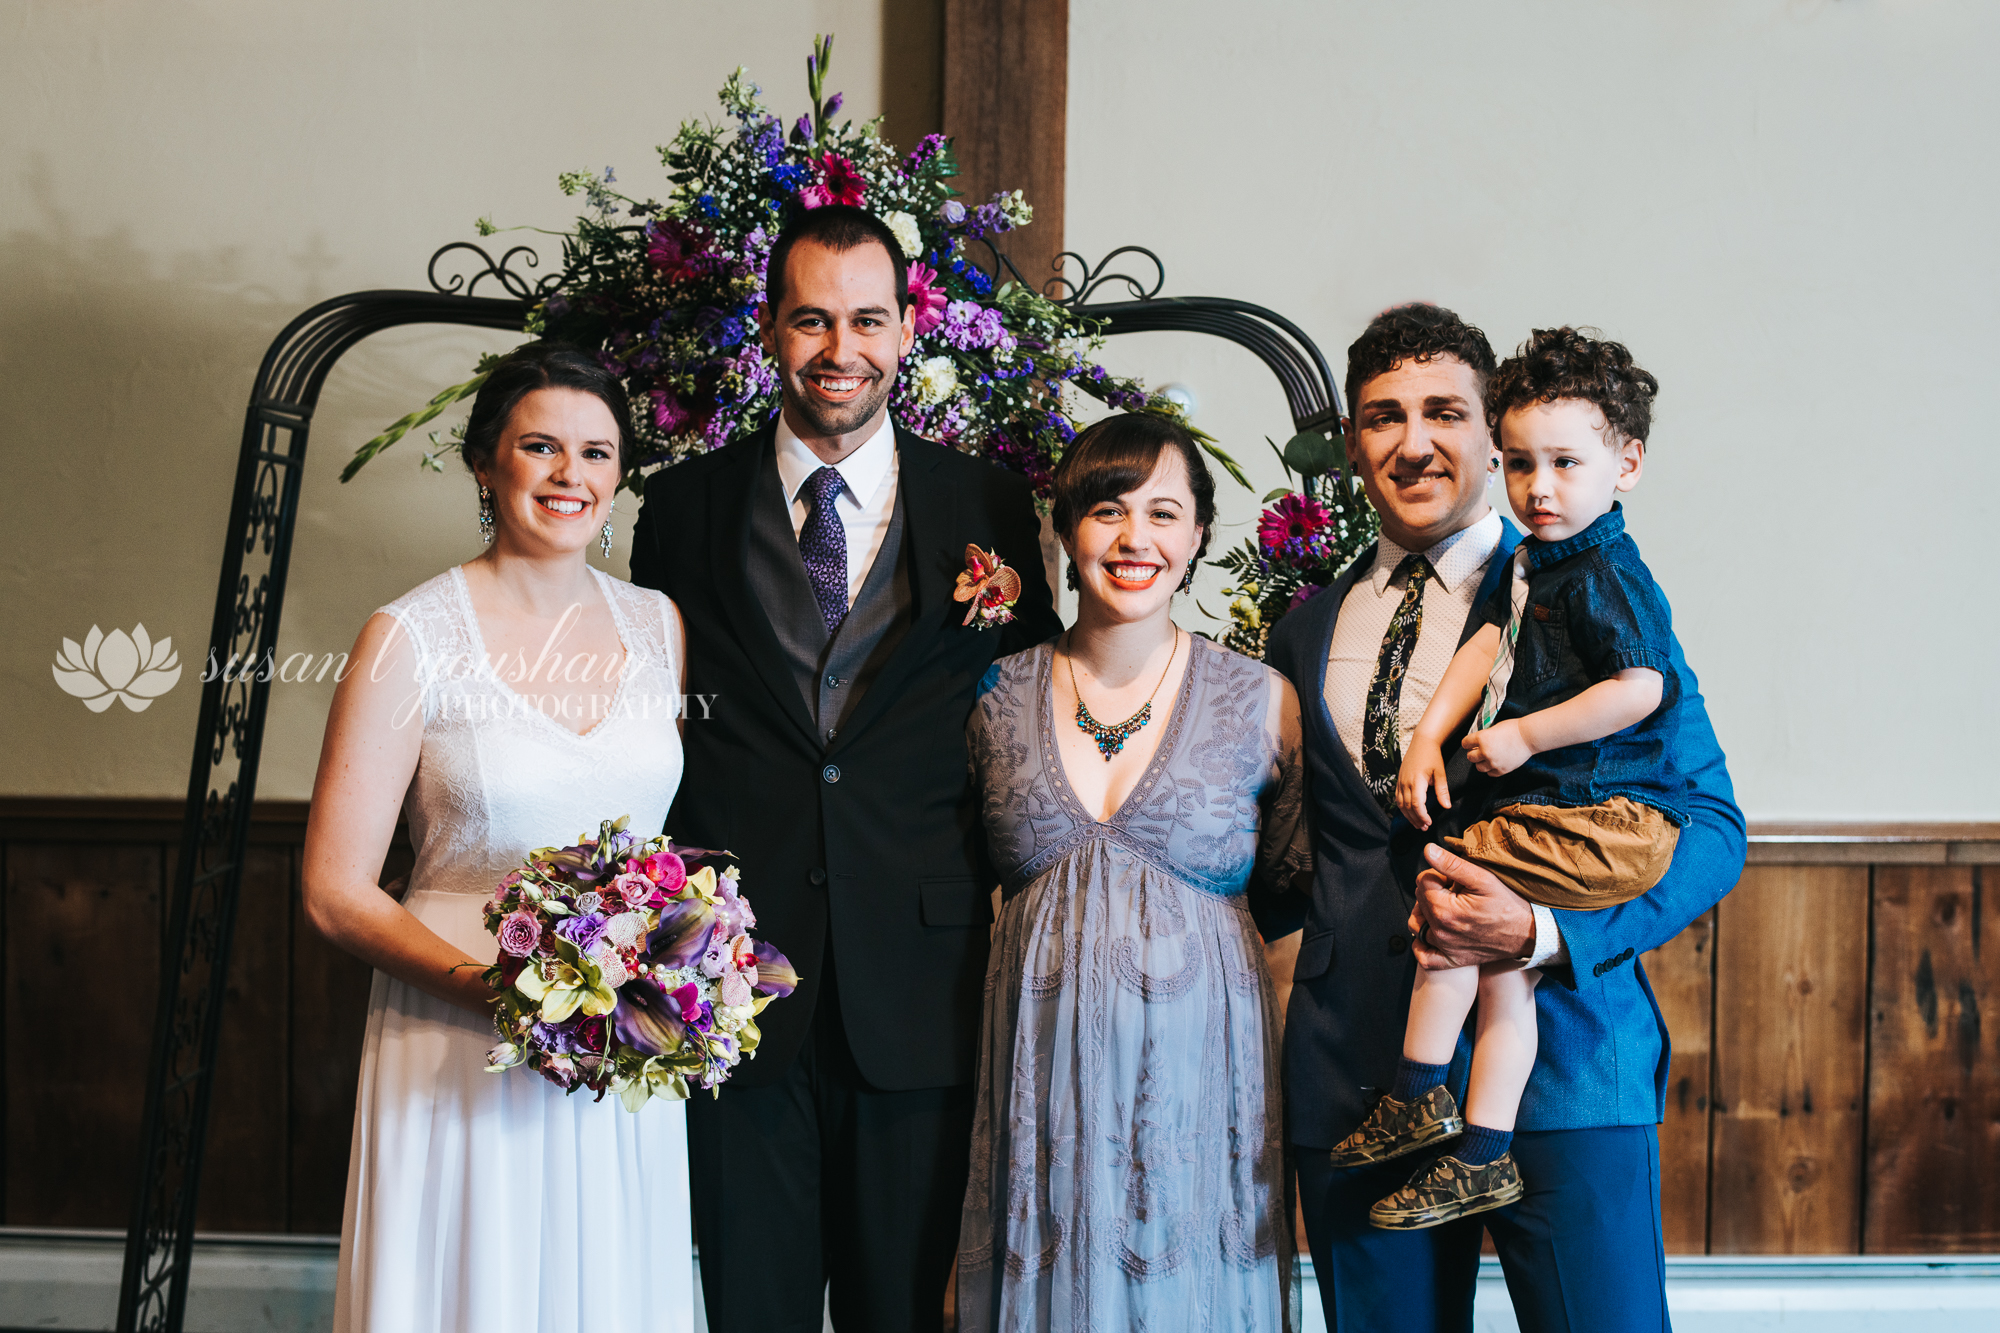 Adena and  Erik Wedding 05-17-2019 SLY Photography-54.jpg